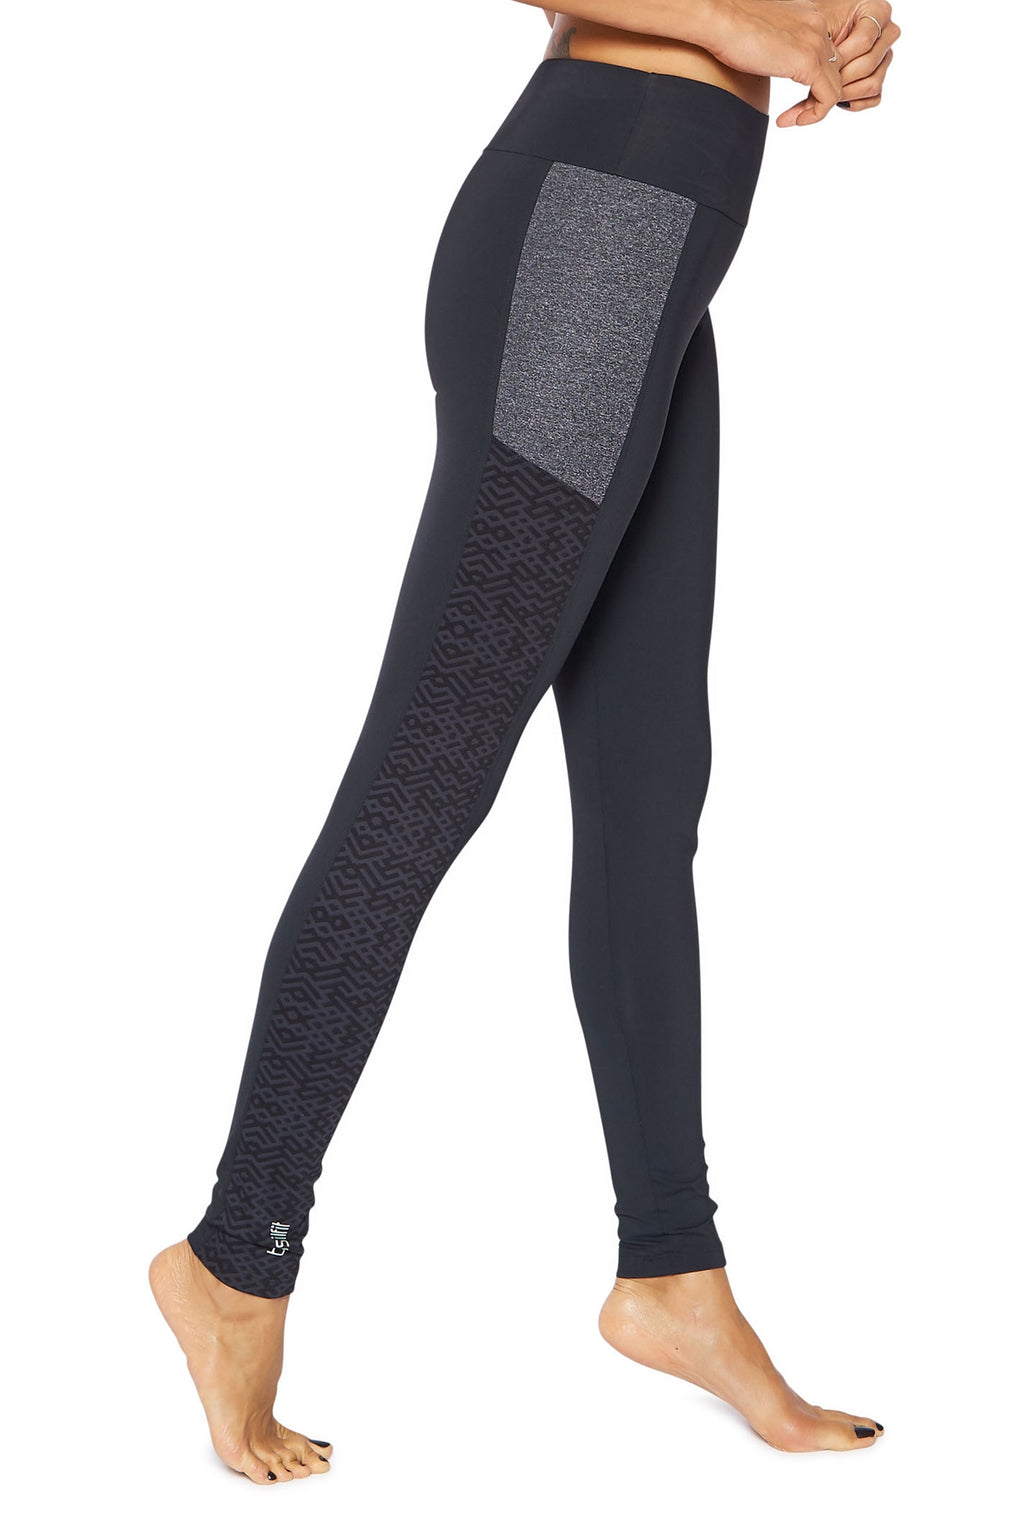 Argos Full Length Legging